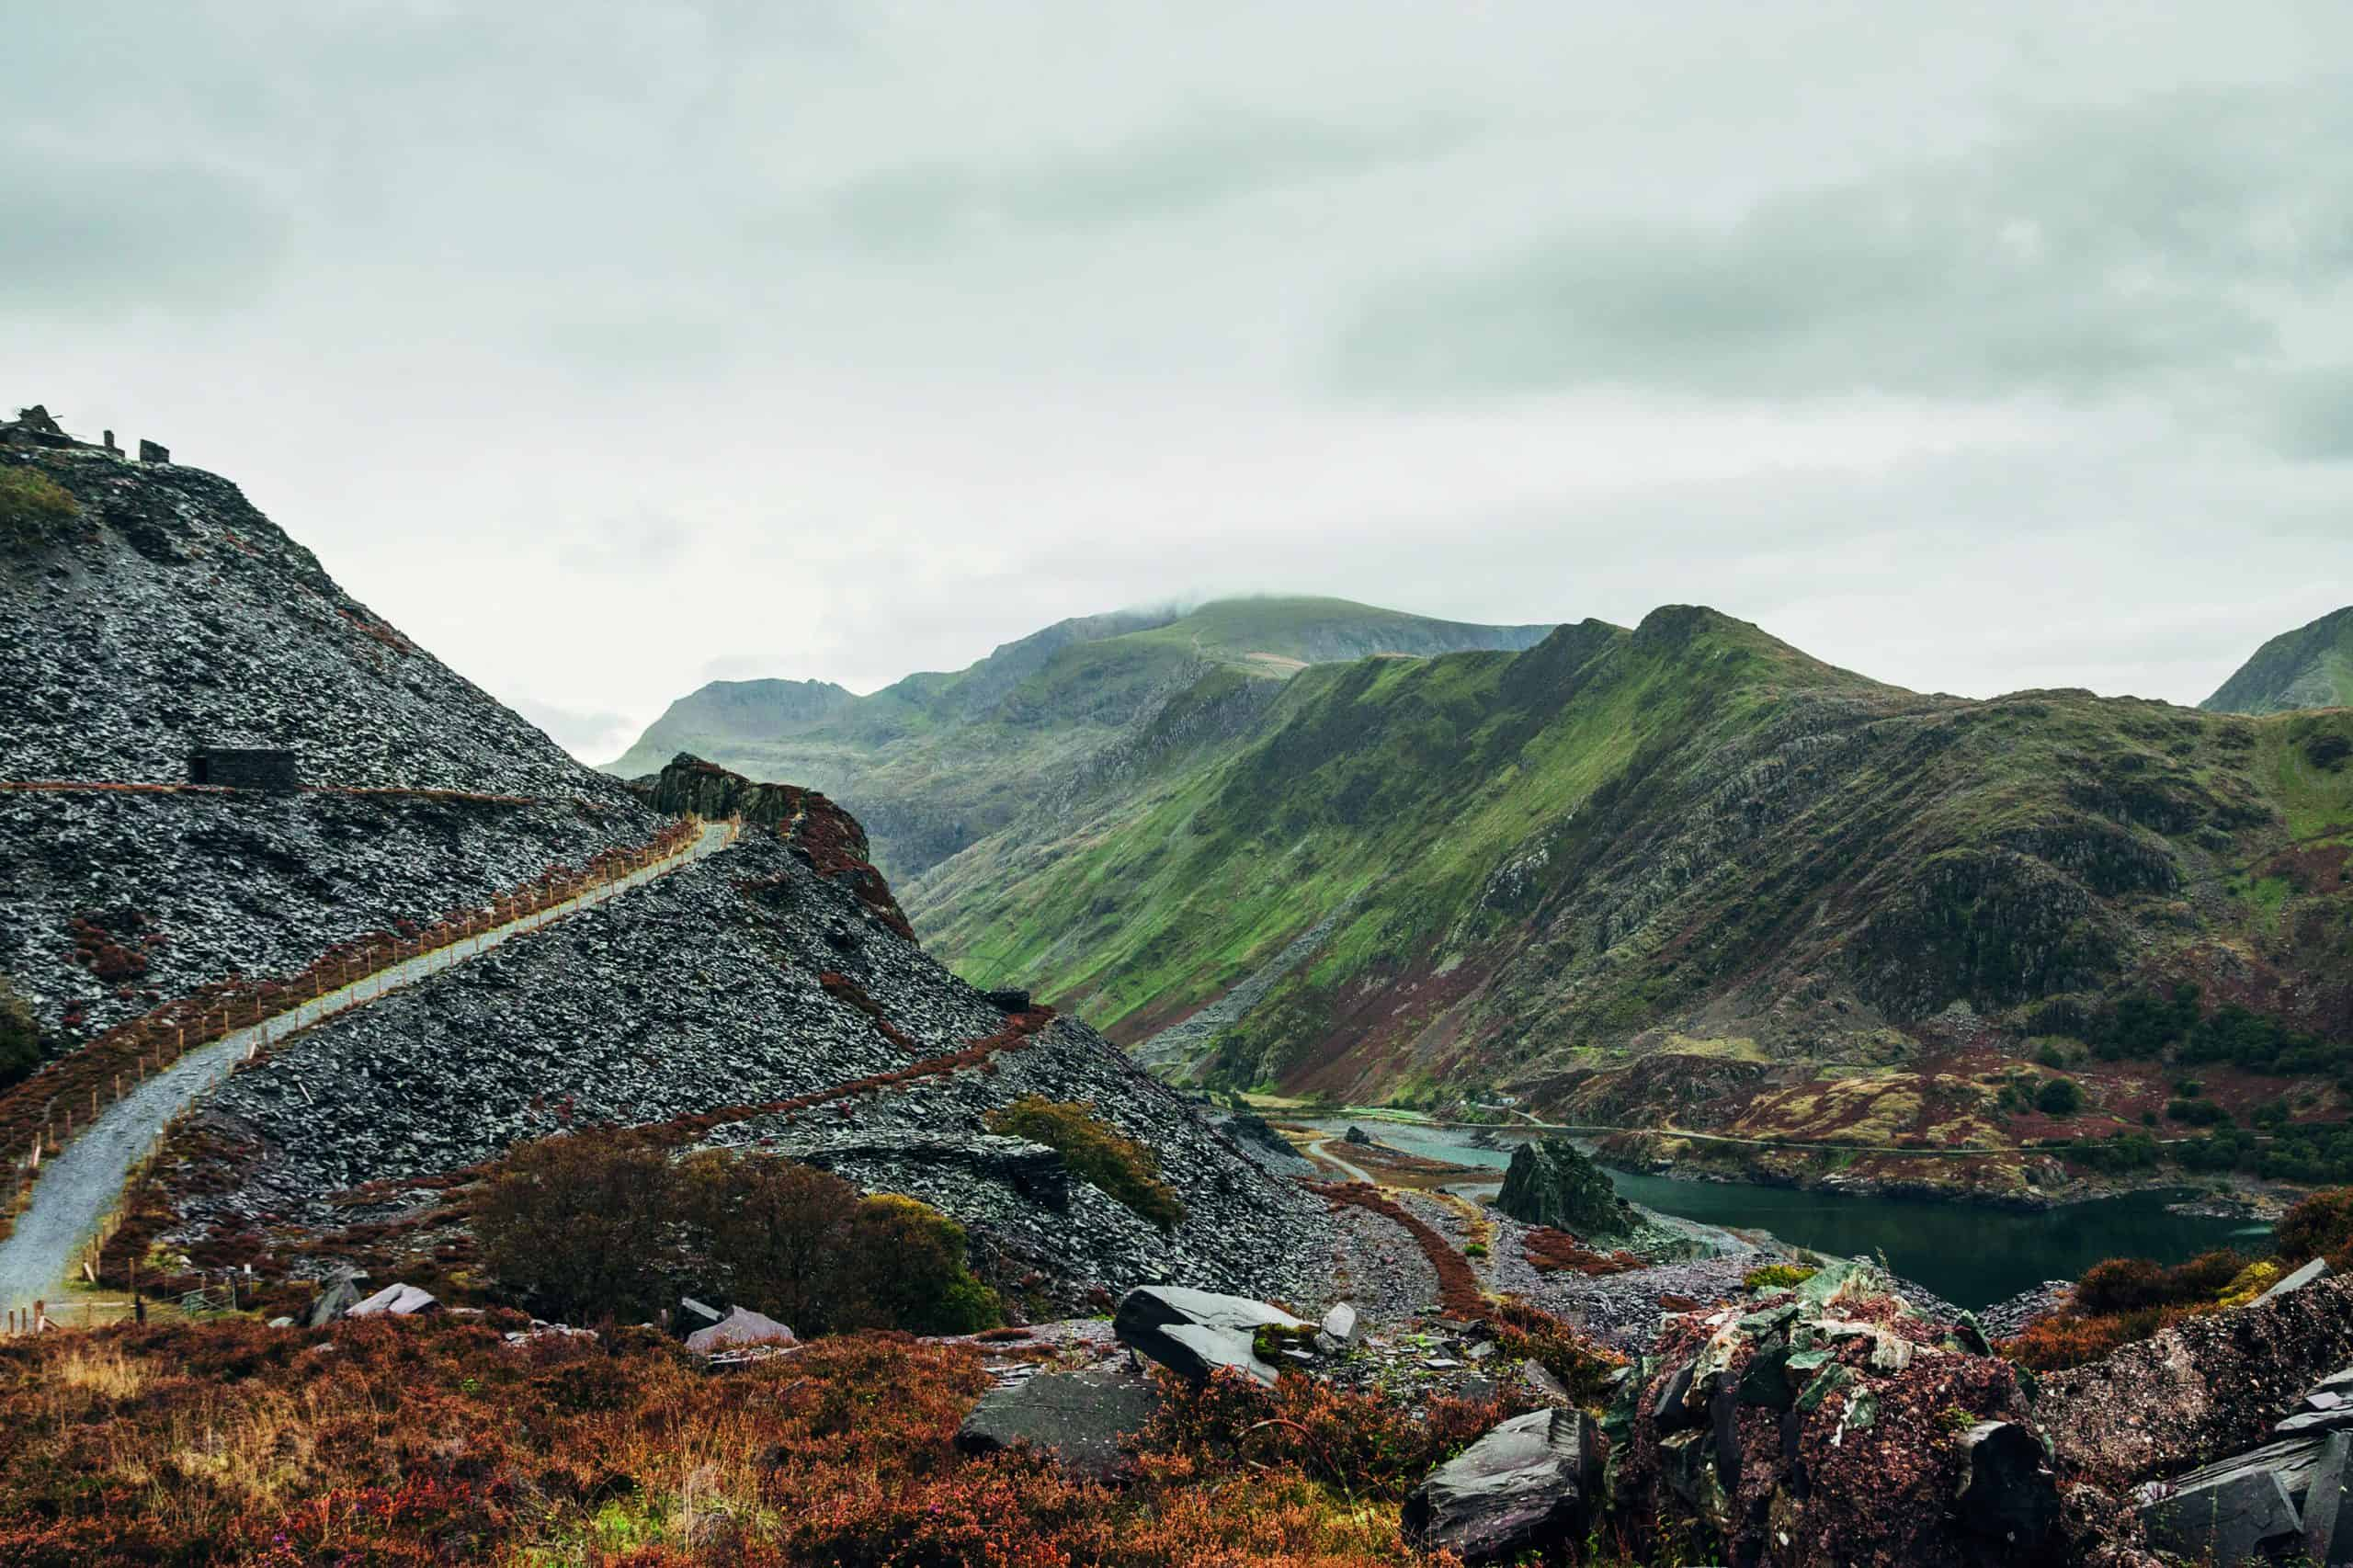 A slate quarry with Mount Snowdon in the background